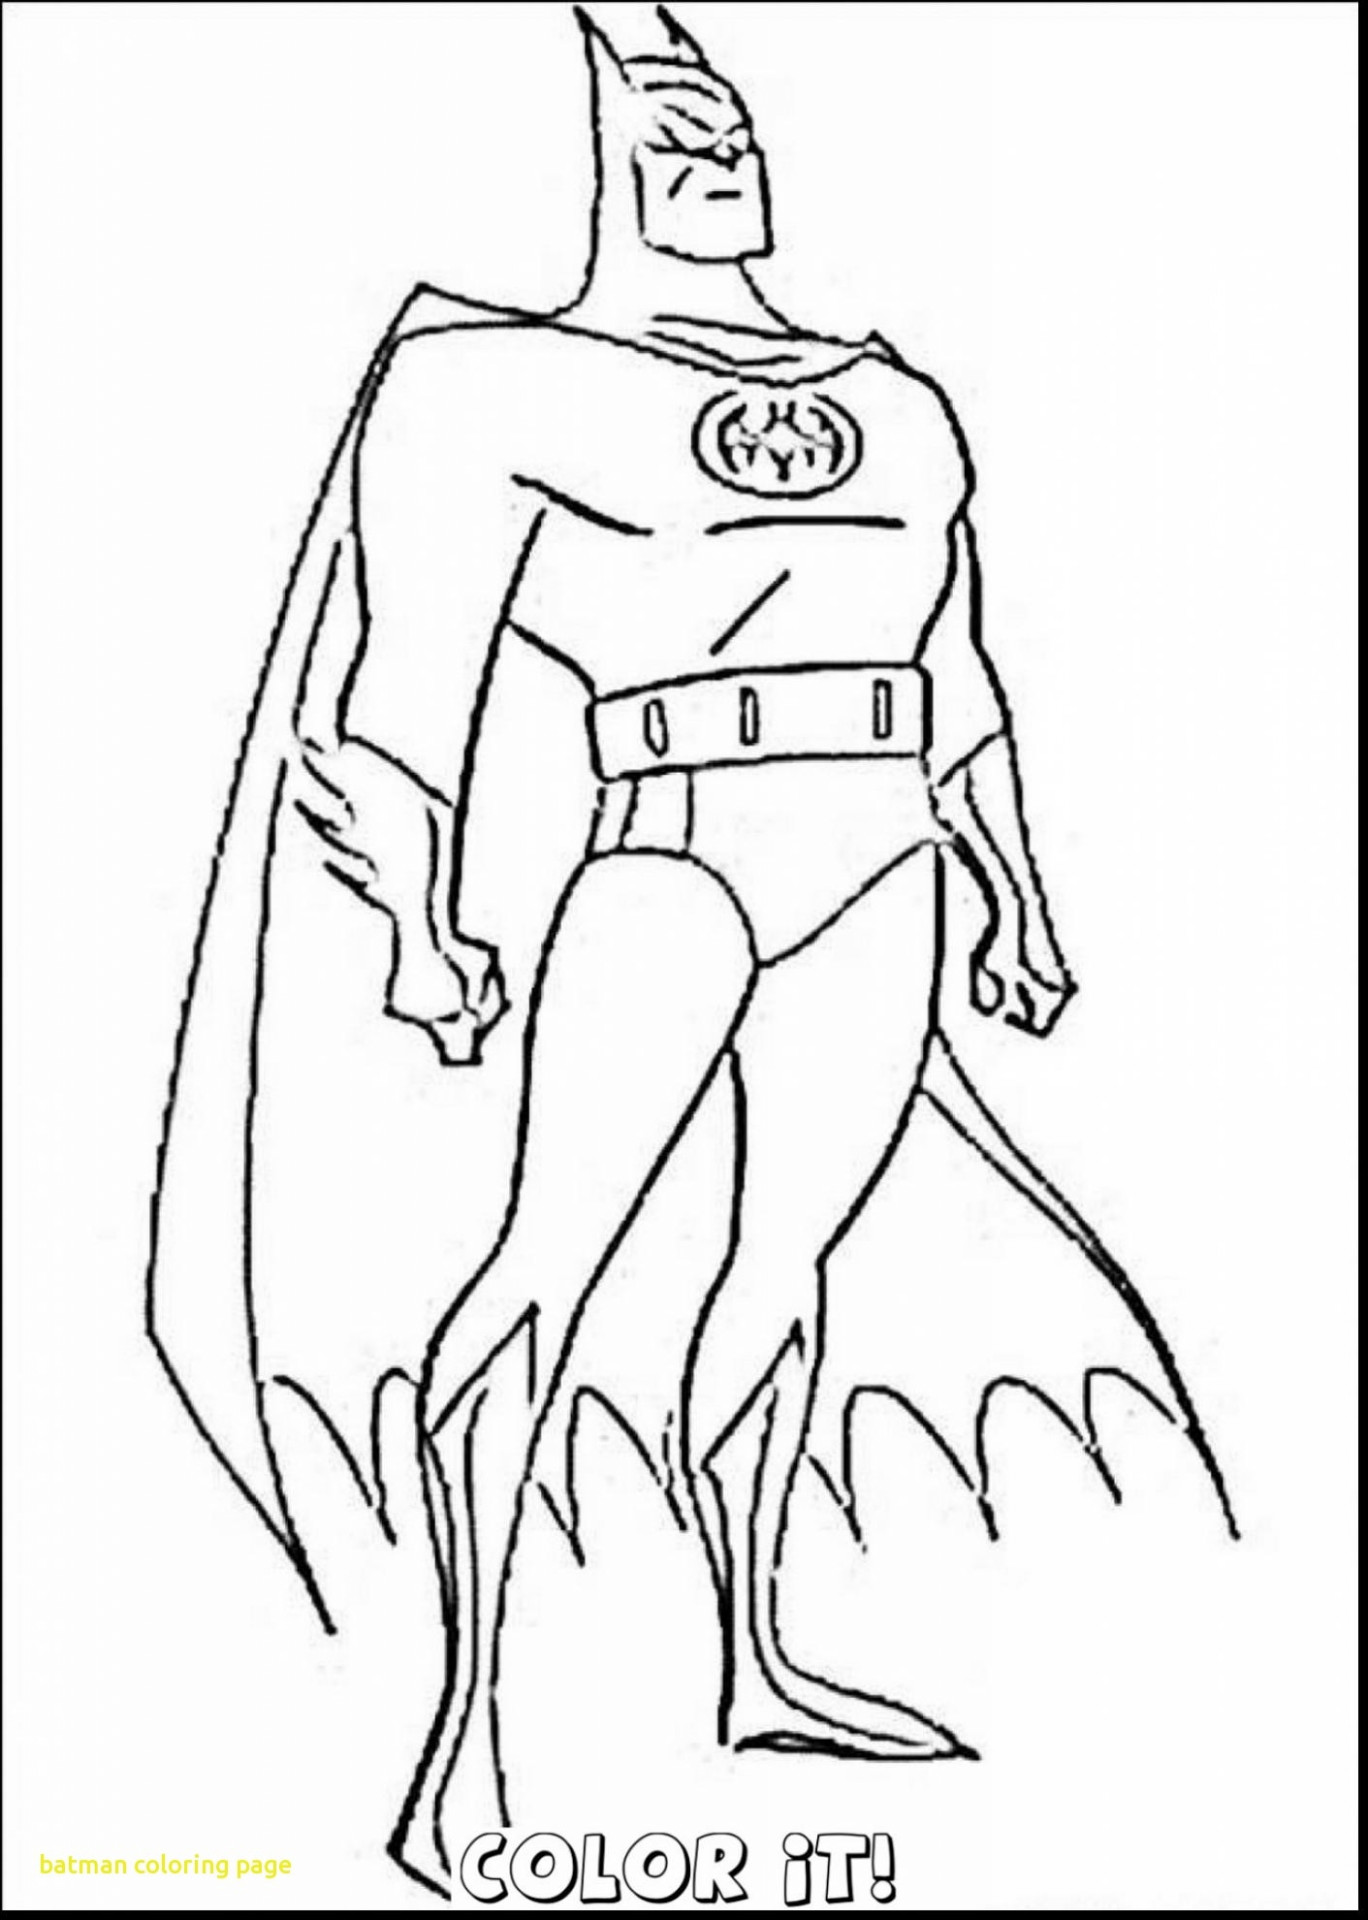 Batman Coloring Pages Printable to Print | Free Coloring Books